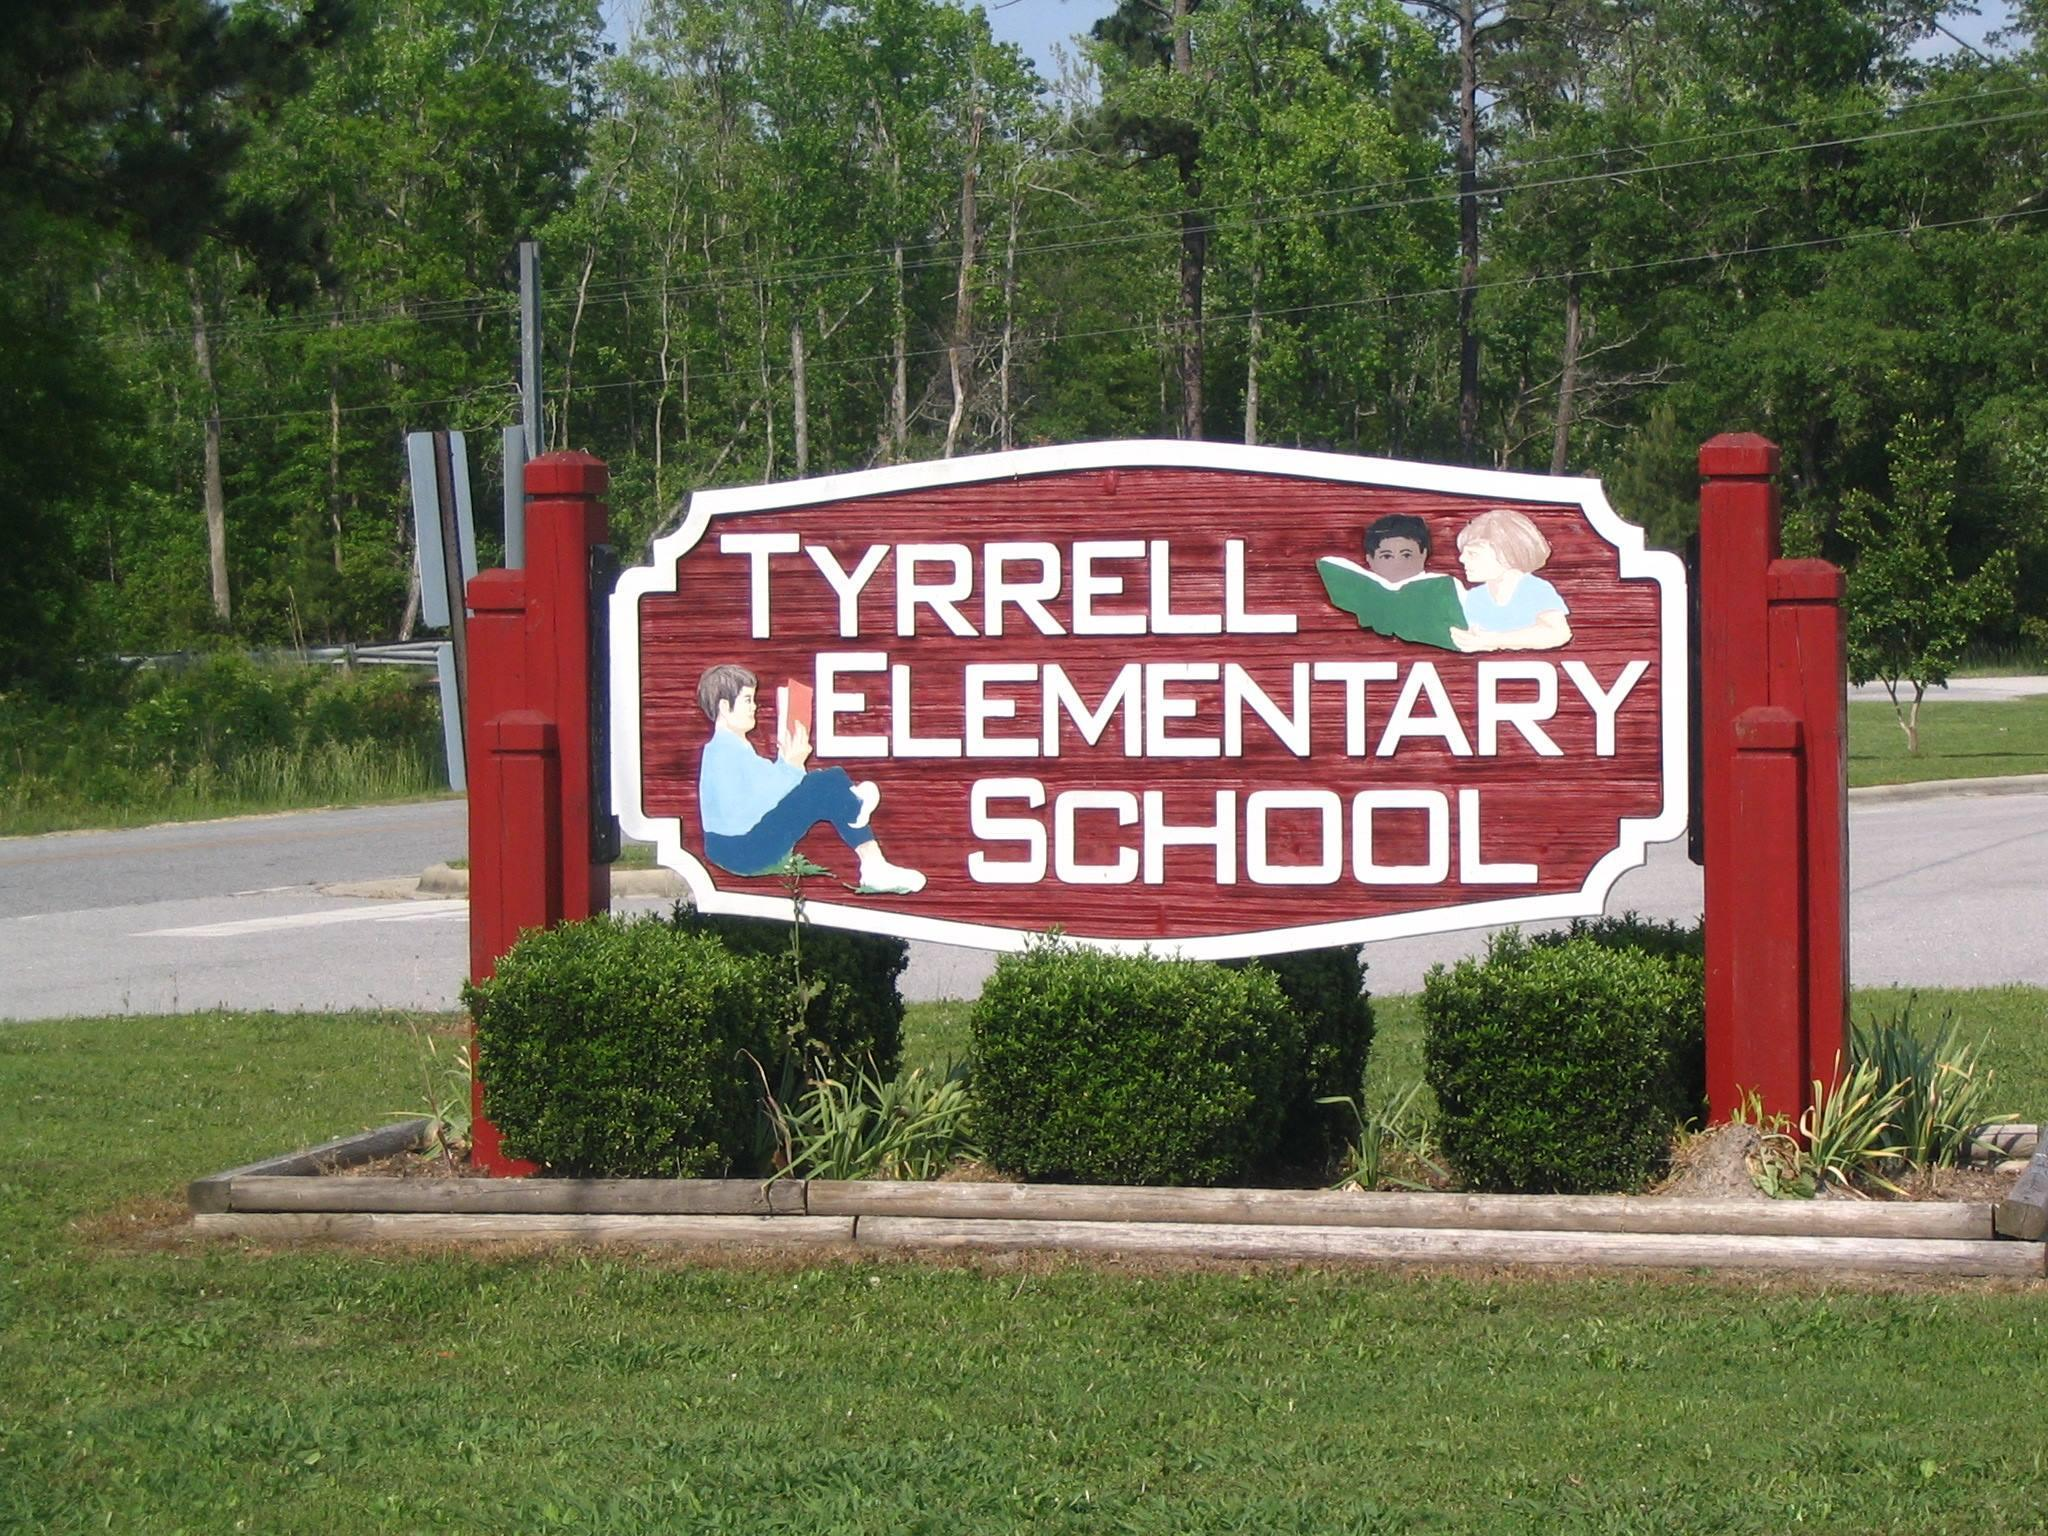 Tyrrell Elementary School Sign out by road